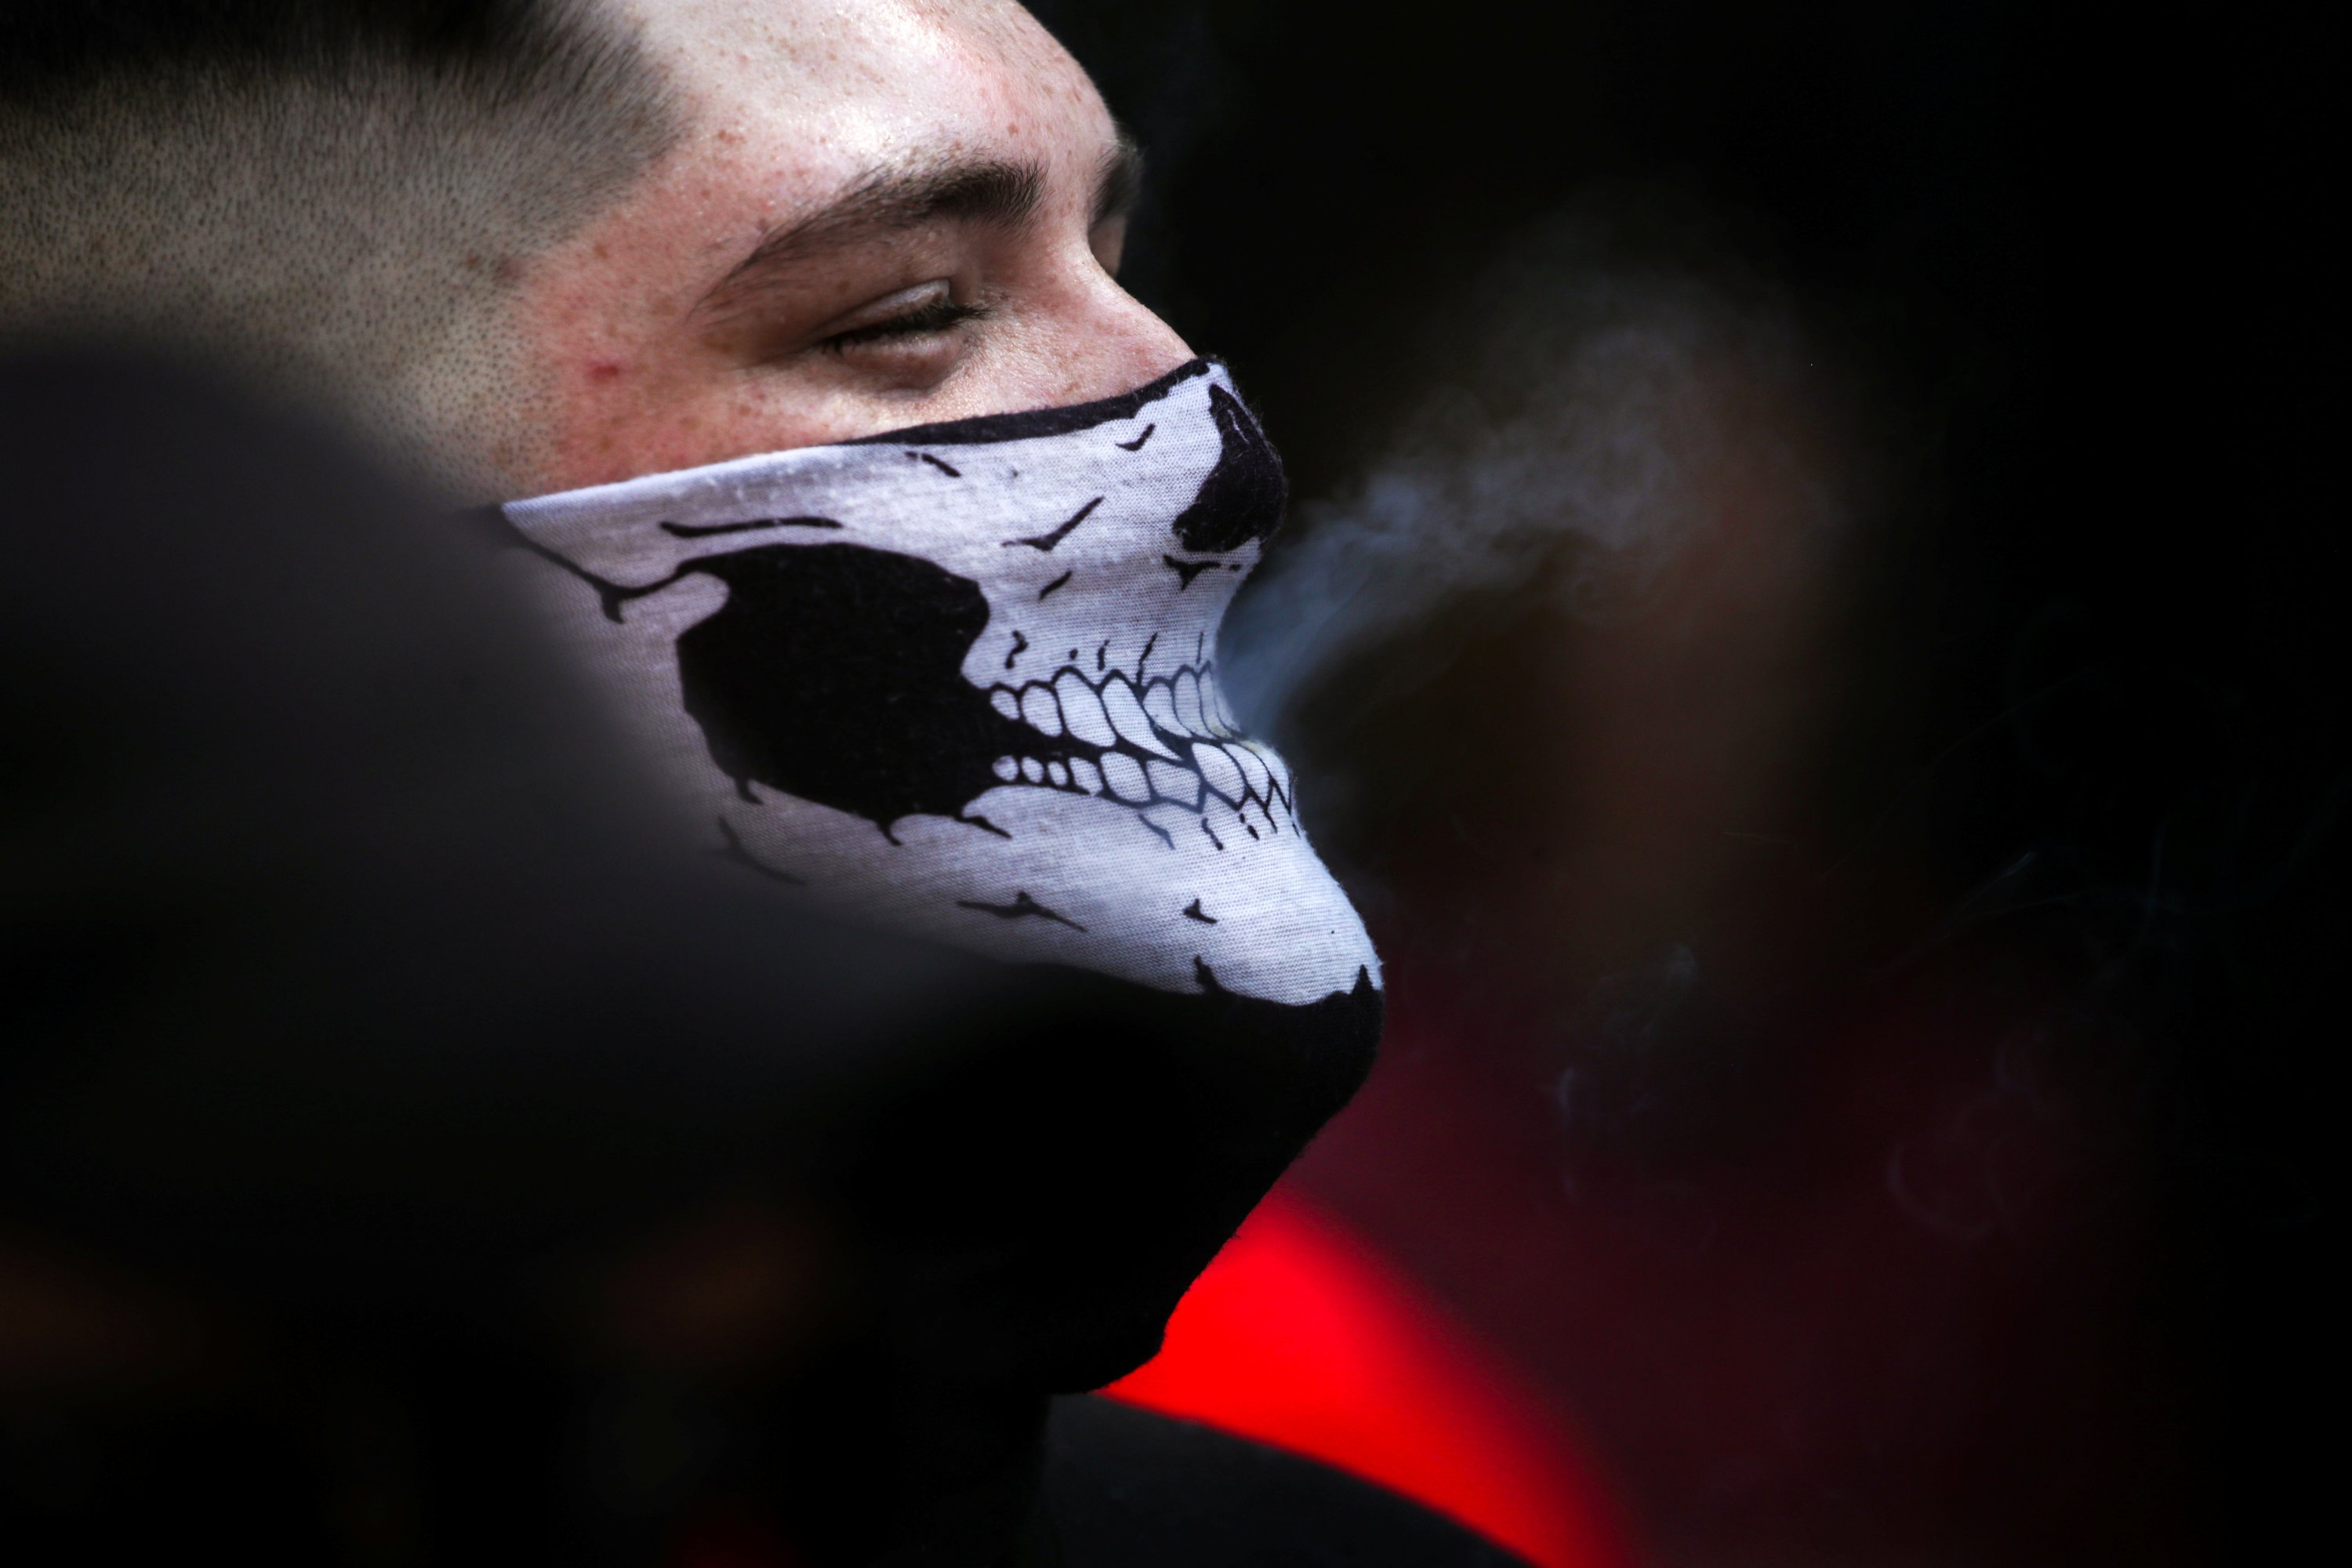 A protester takes a drag of a cigarette through his mask as he attends a rally for gun rights near the Virginia State Capitol in Richmond, U.S., July 4, 2020. Smoking is one of the biggest causes of aging. (REUTERS Photo)